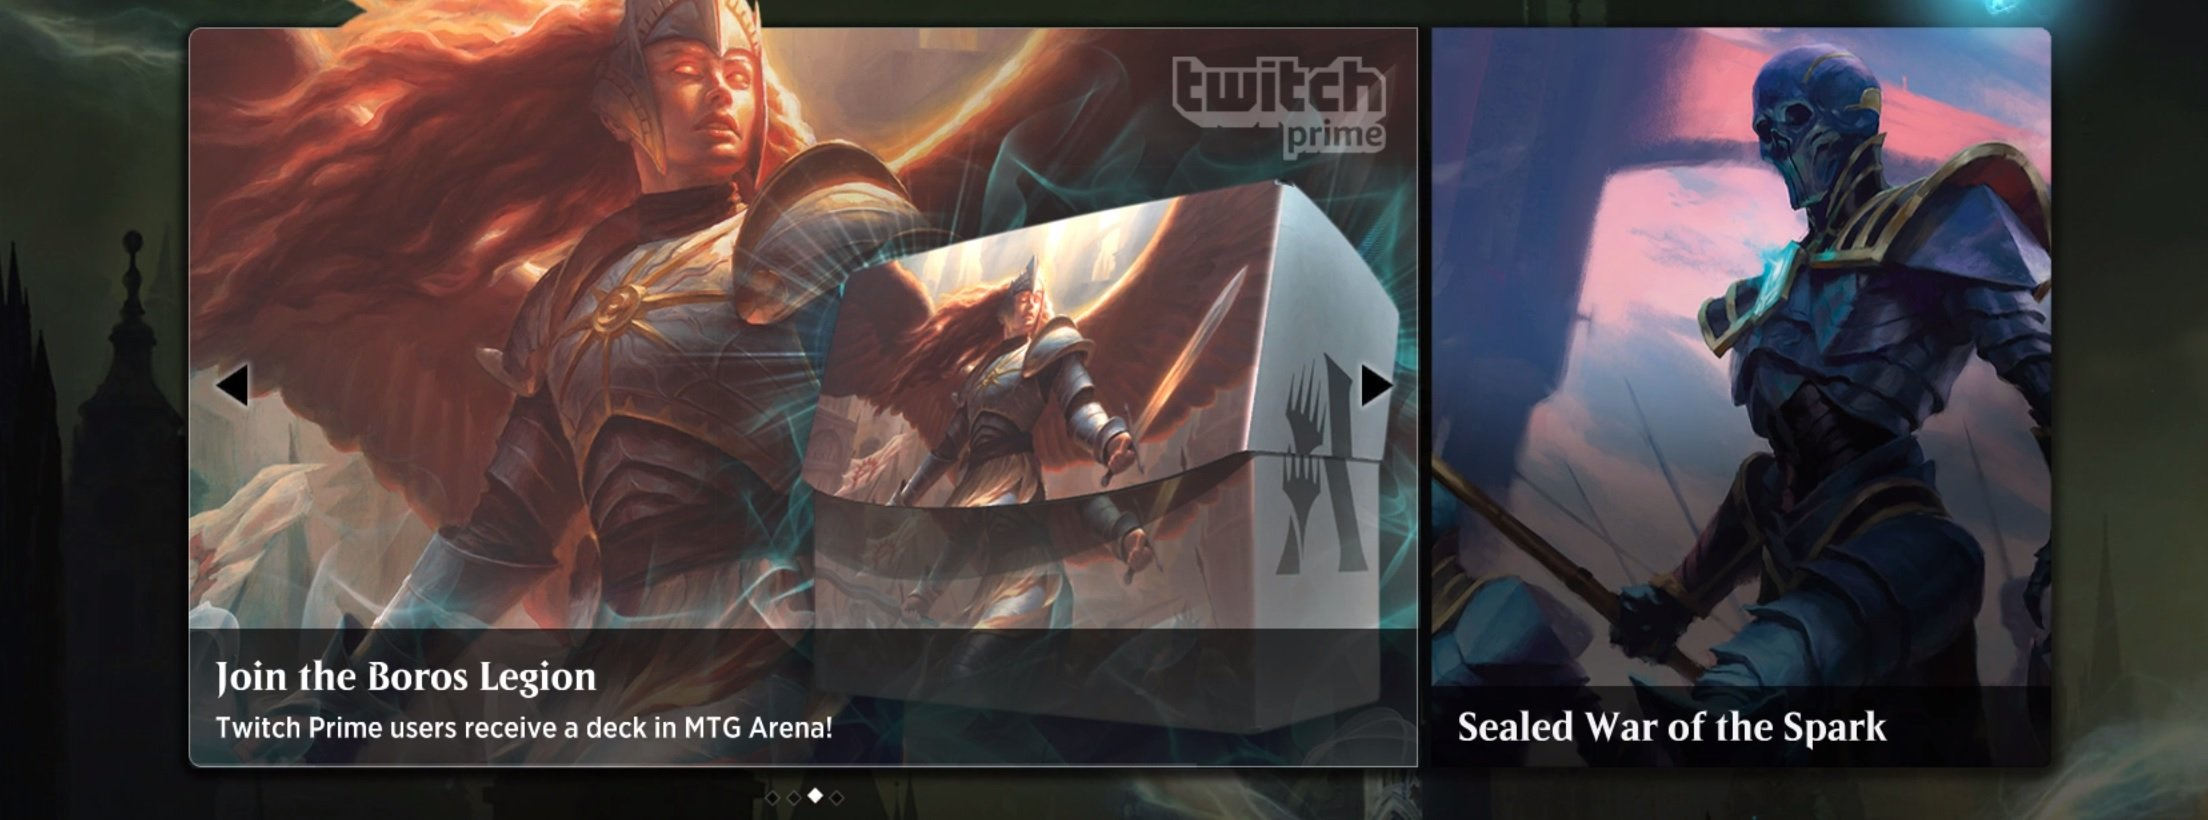 Update) Twitch Prime subscribers are getting a free Magic: The